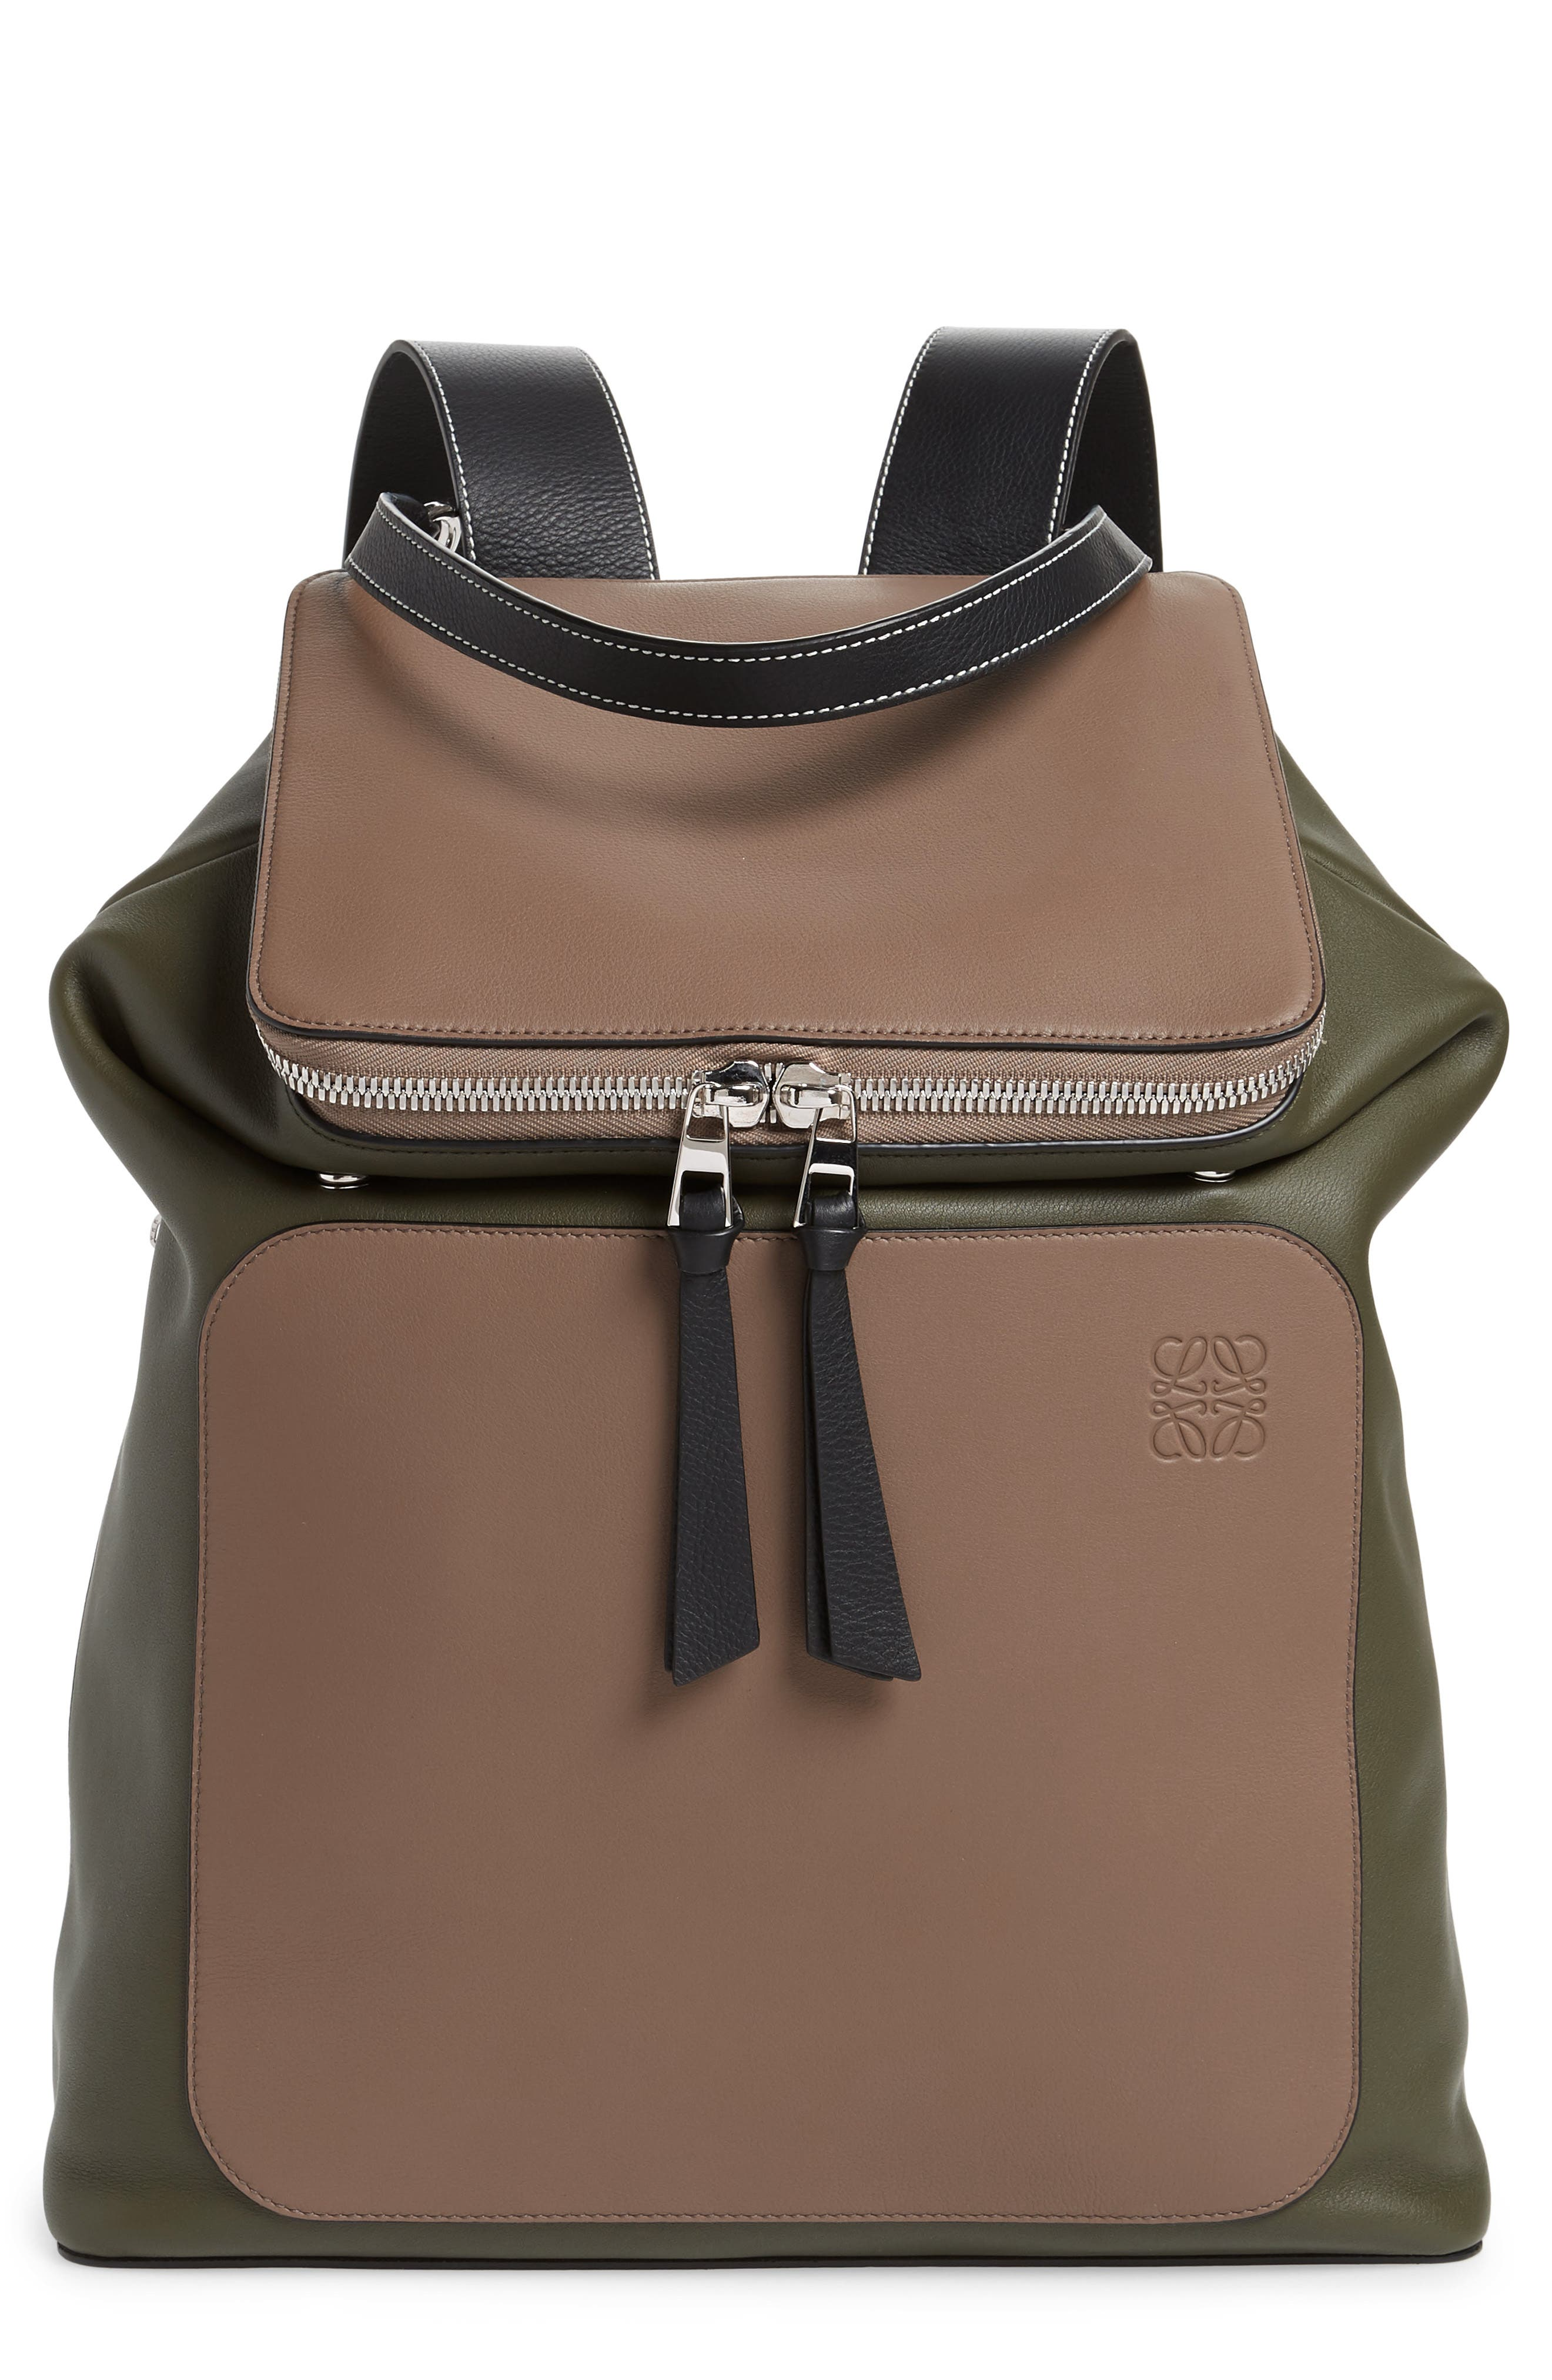 LOEWE, Goya Backpack, Main thumbnail 1, color, DARK TAUPE/ GREEN MILITARY